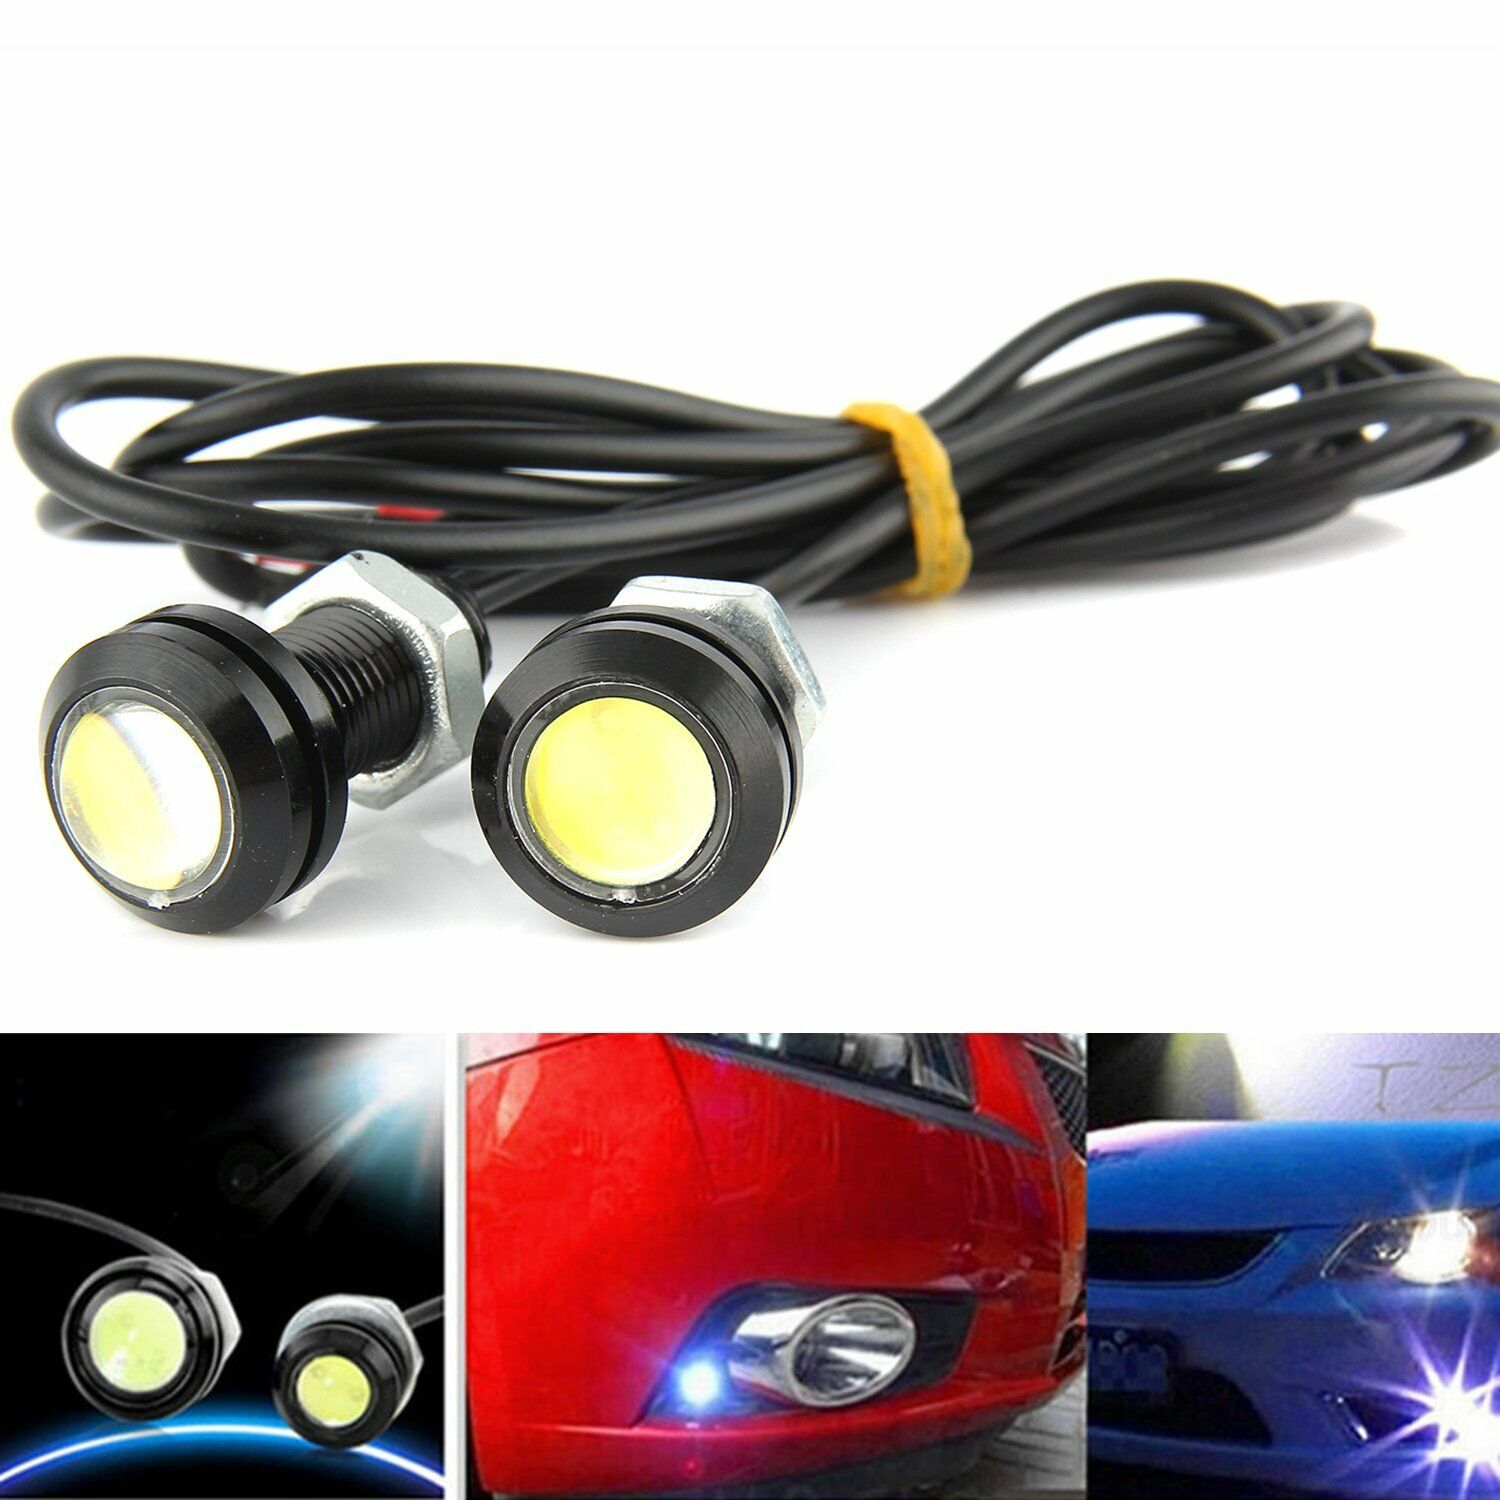 shunyang Eagle Eye LED 18MM Car Fog Lamp DRL Reverse Parking Turn Signal Waterproof Daytime Running Lights Red 10Pcs